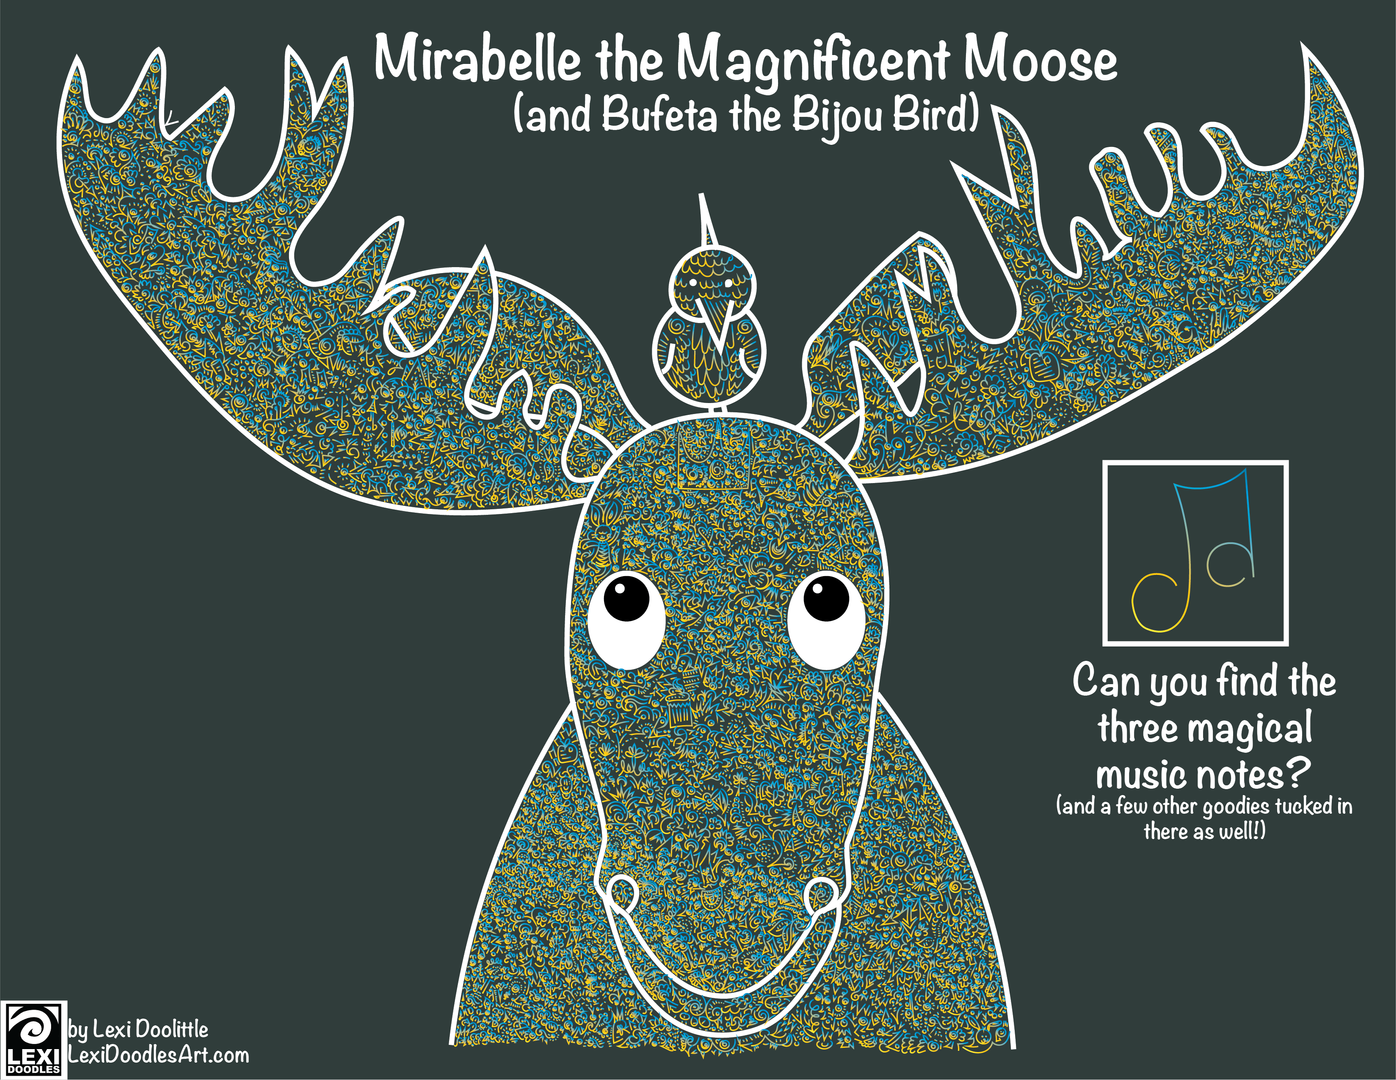 Mirabelle the Magnificent Moose - and Bufeta the Bijou Bird